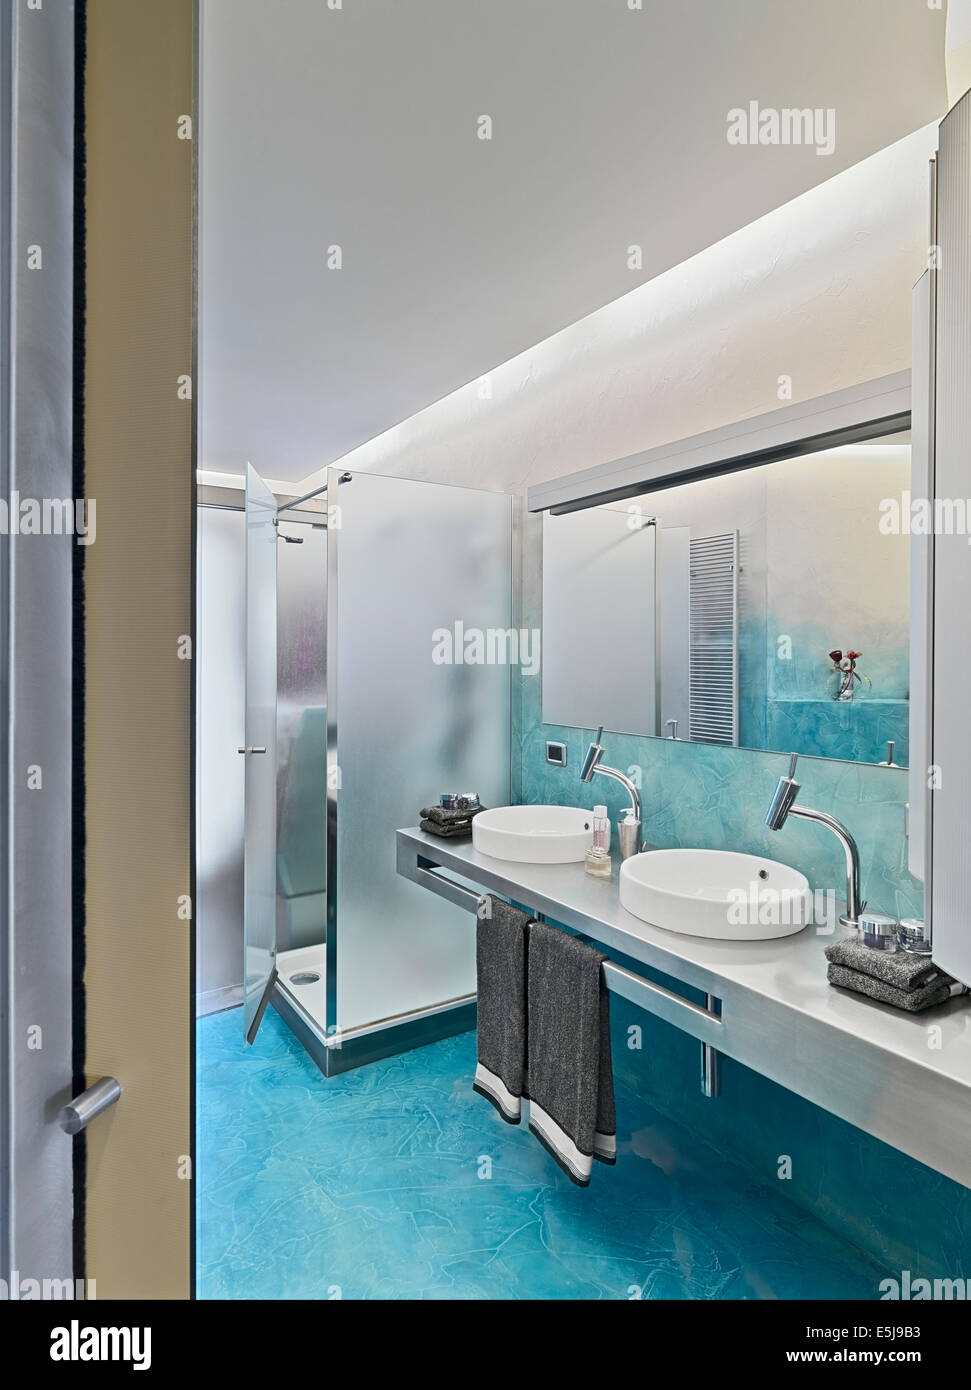 Interior View Of A Modern Bathroom With Closeup On The Washbasin